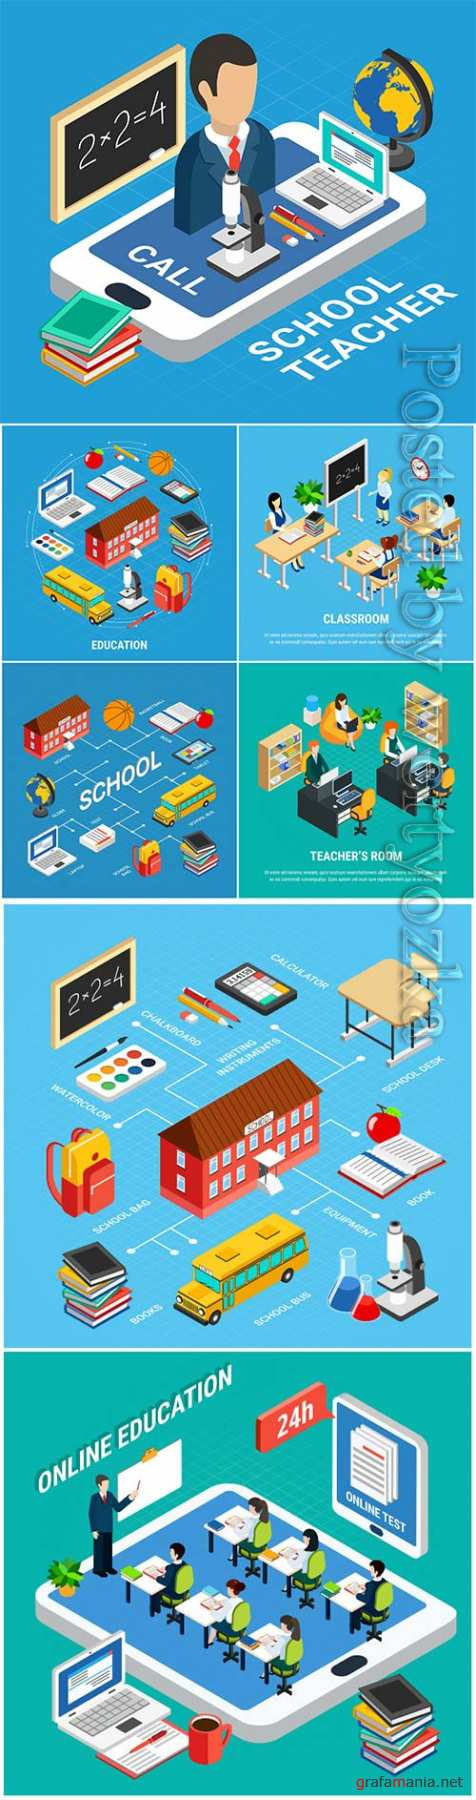 Isometric education illustration with school teacher and devices